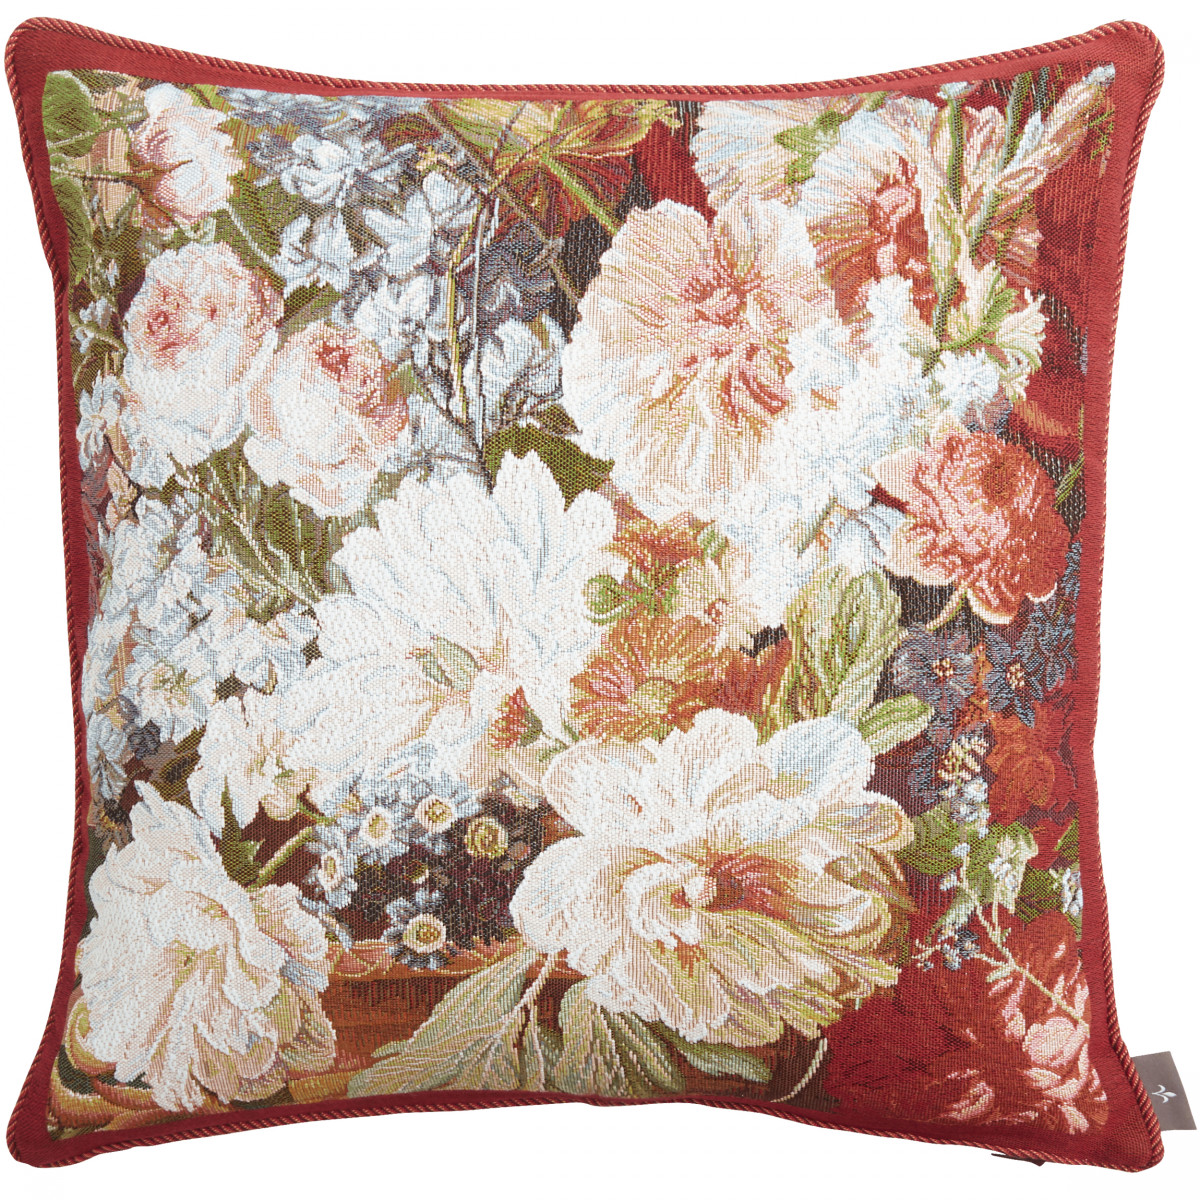 Coussin tapisserie bouquet classique made in france rouge   50x50